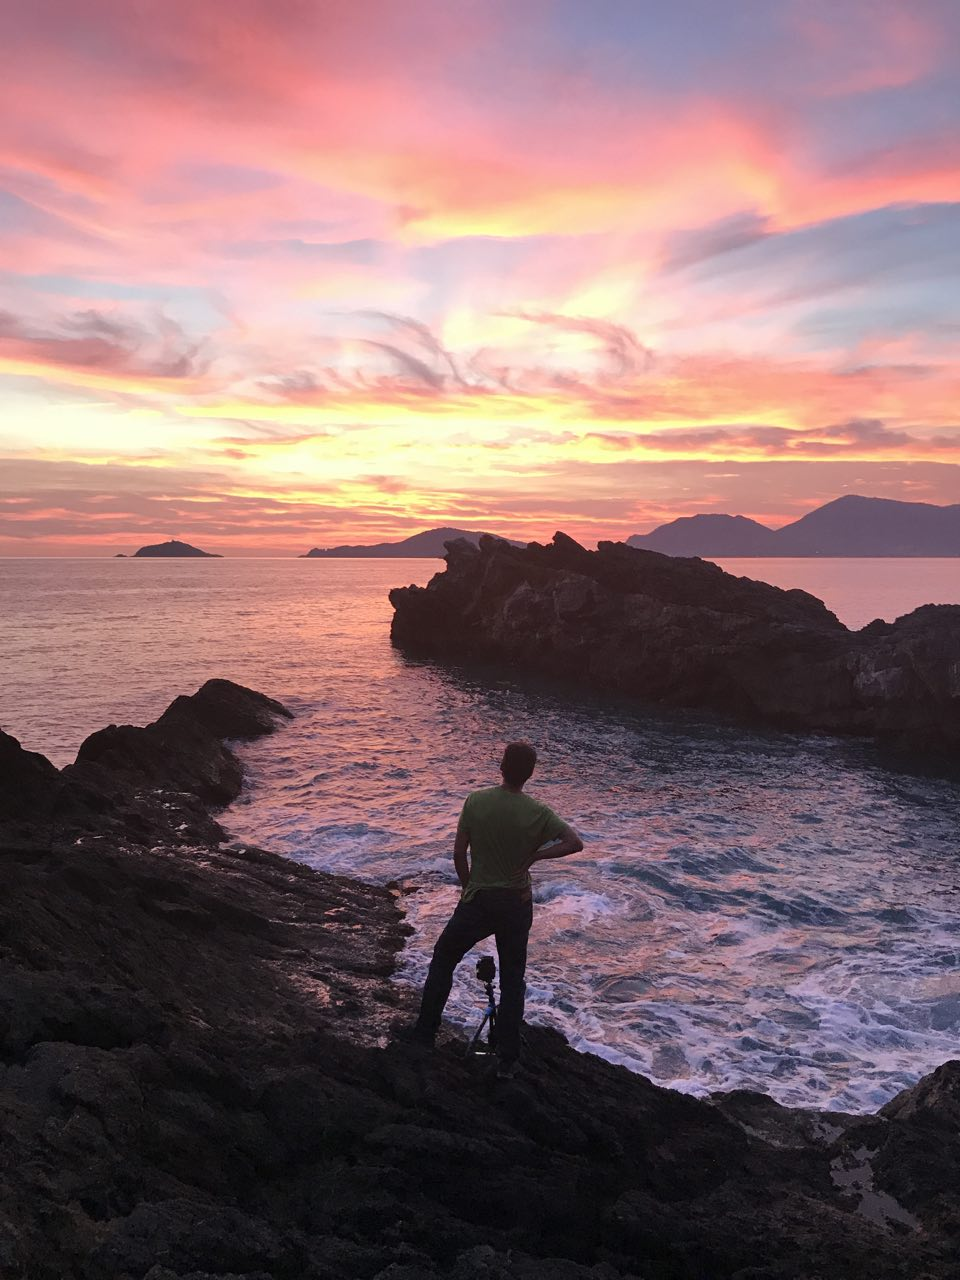 About me - On the field in Tellaro, during an atomic sunset